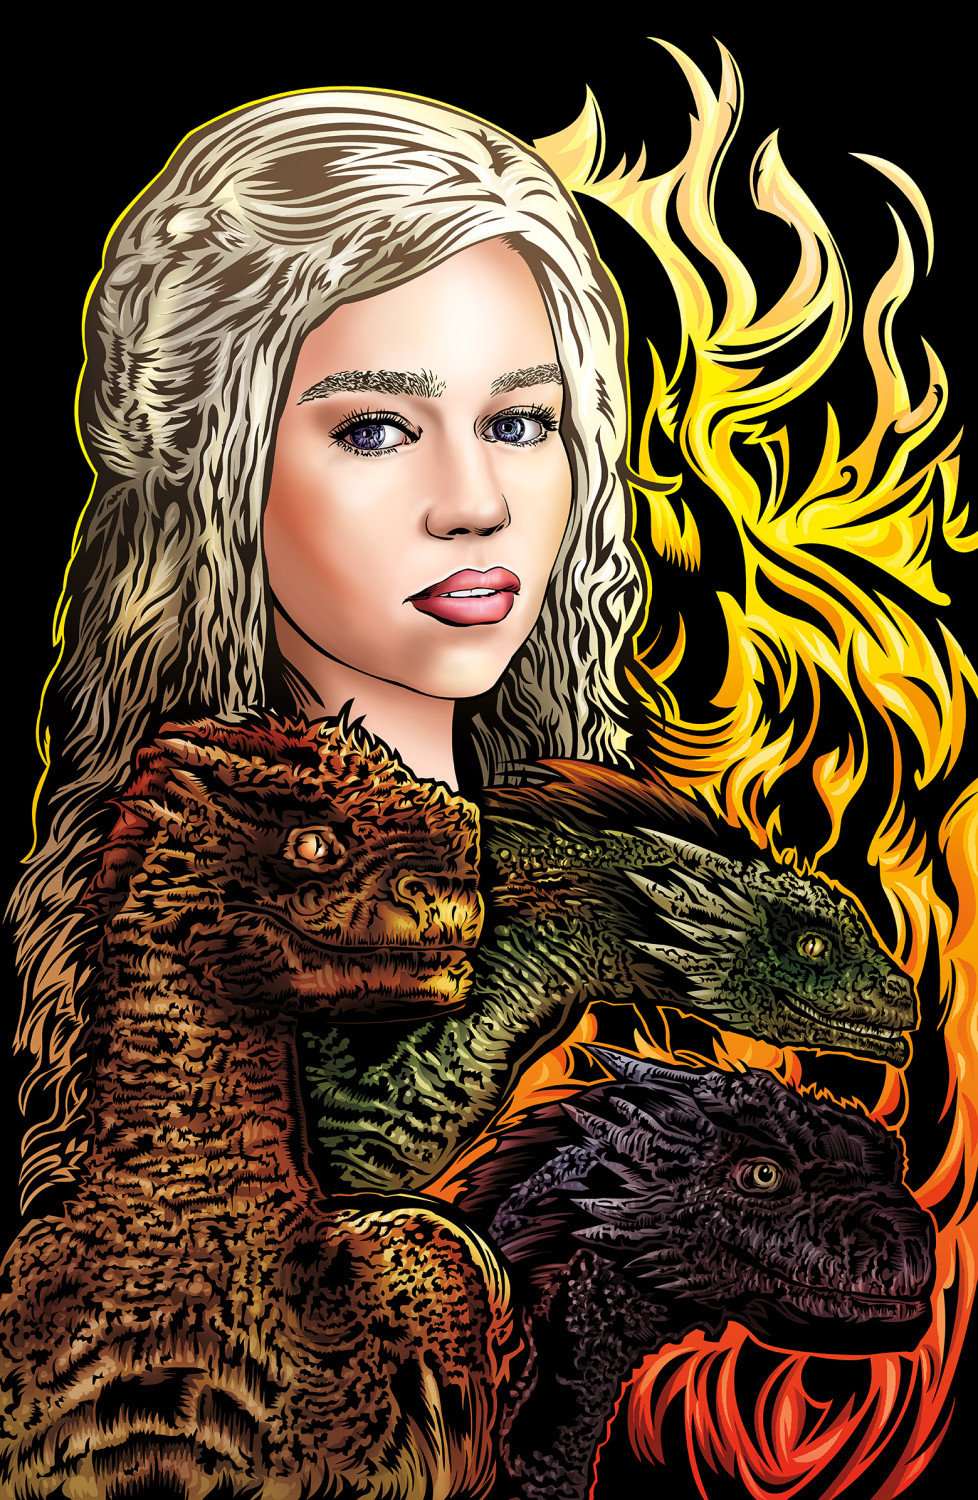 Daenerys Targaryen: Mother of Dragons | Adam Wallenta